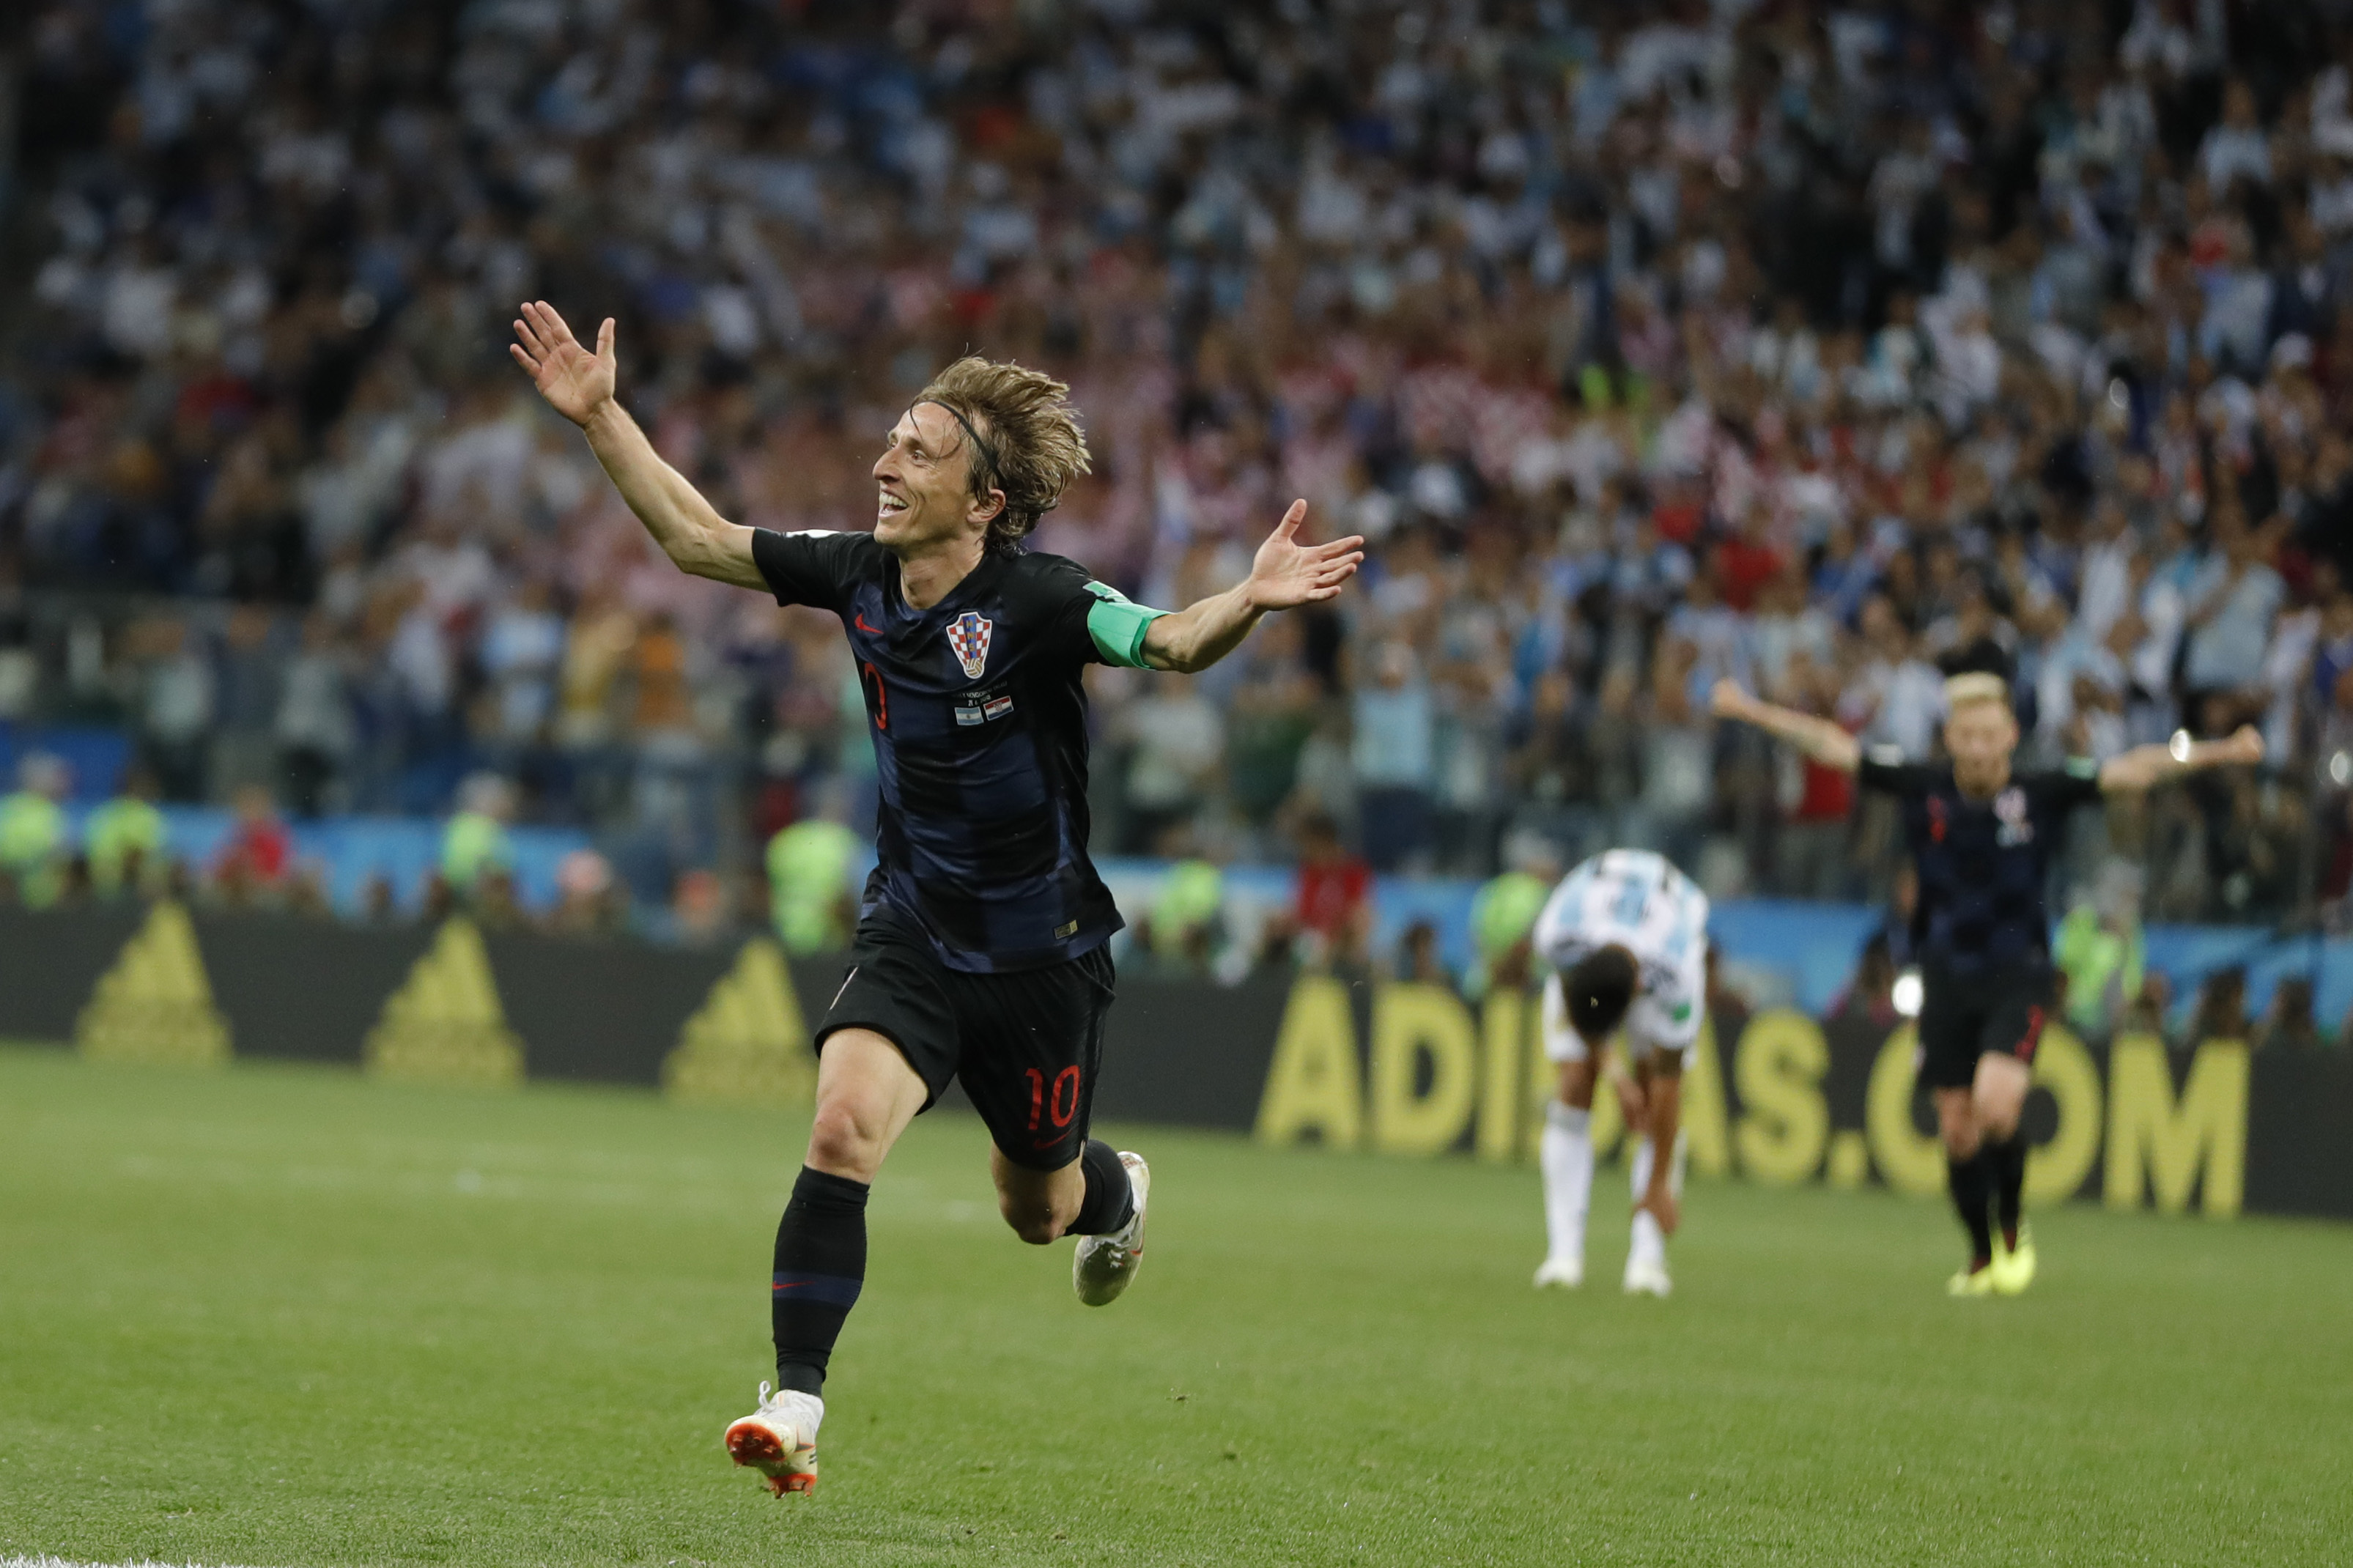 "<div class=""meta image-caption""><div class=""origin-logo origin-image none""><span>none</span></div><span class=""caption-text"">Croatia's Luka Modric celebrates with teammates after scoring during the group D match against Argentina on Thursday, June 21, 2018. Modric scored once in Croatia's 3-0 victory. (Ricardo Mazalan/AP Photo)</span></div>"